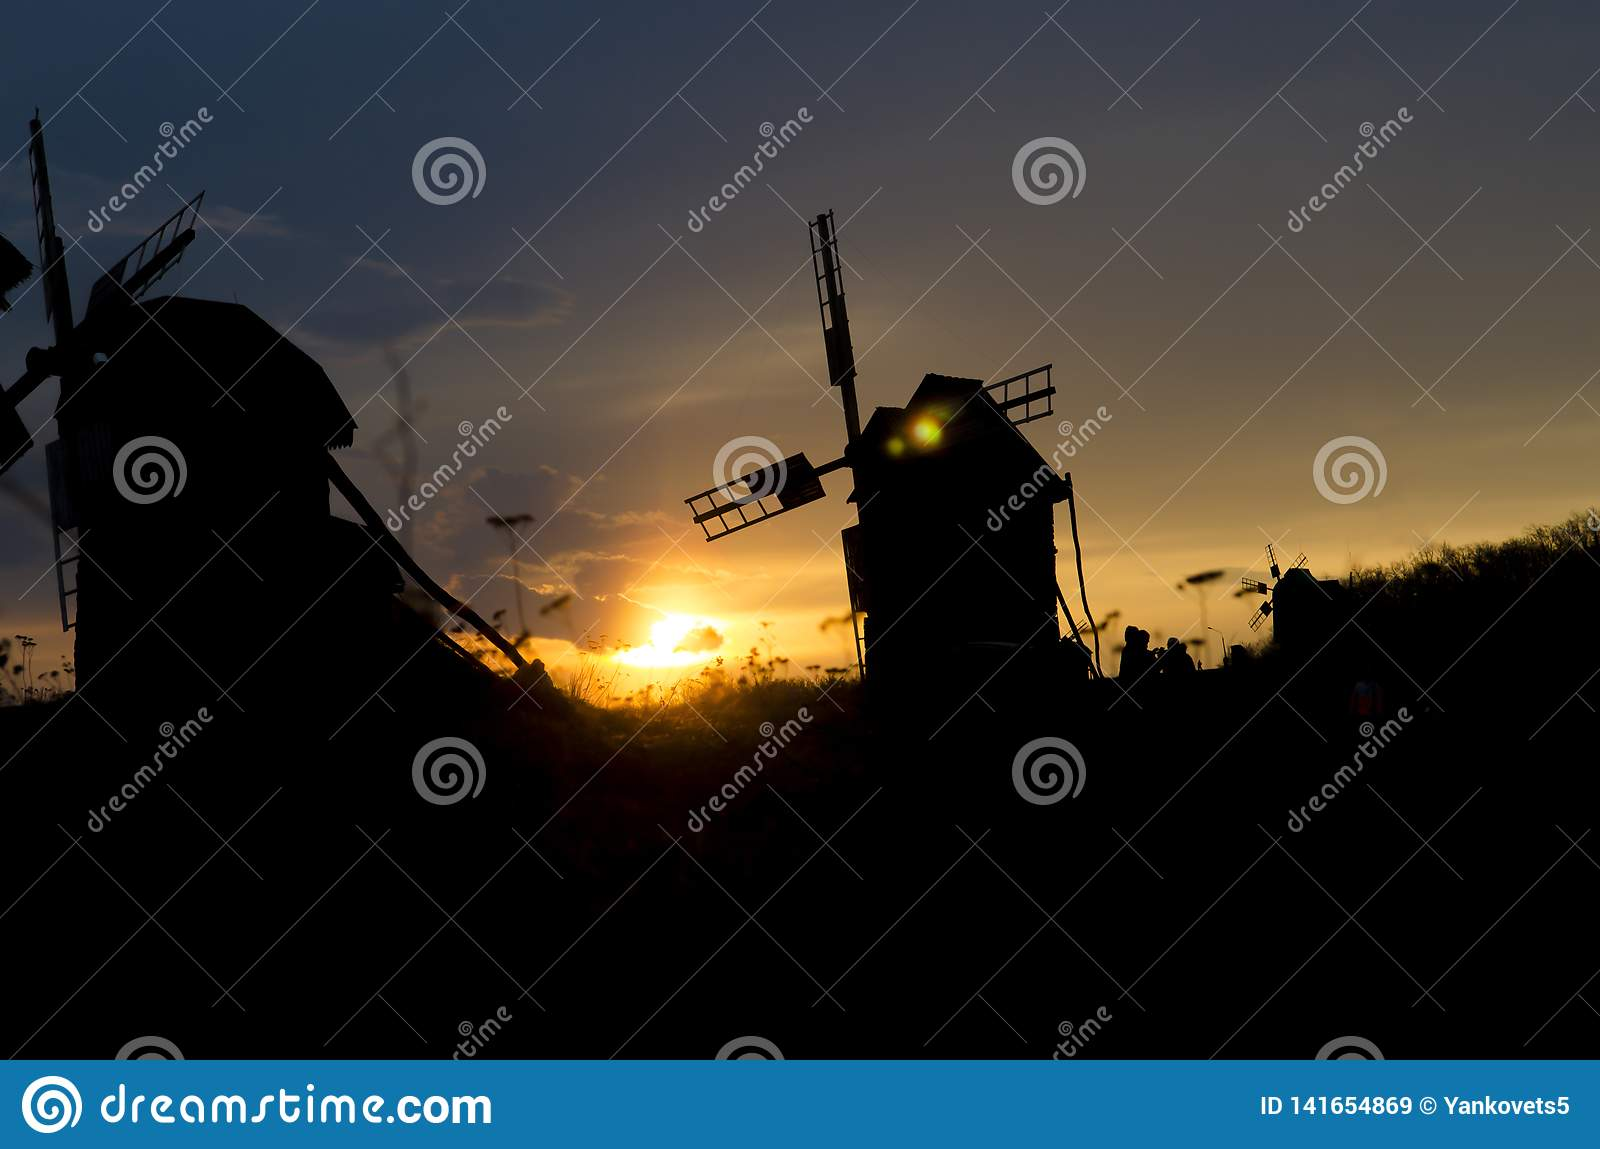 Silhouettes of old windmills on the background of bright blue sky sunset